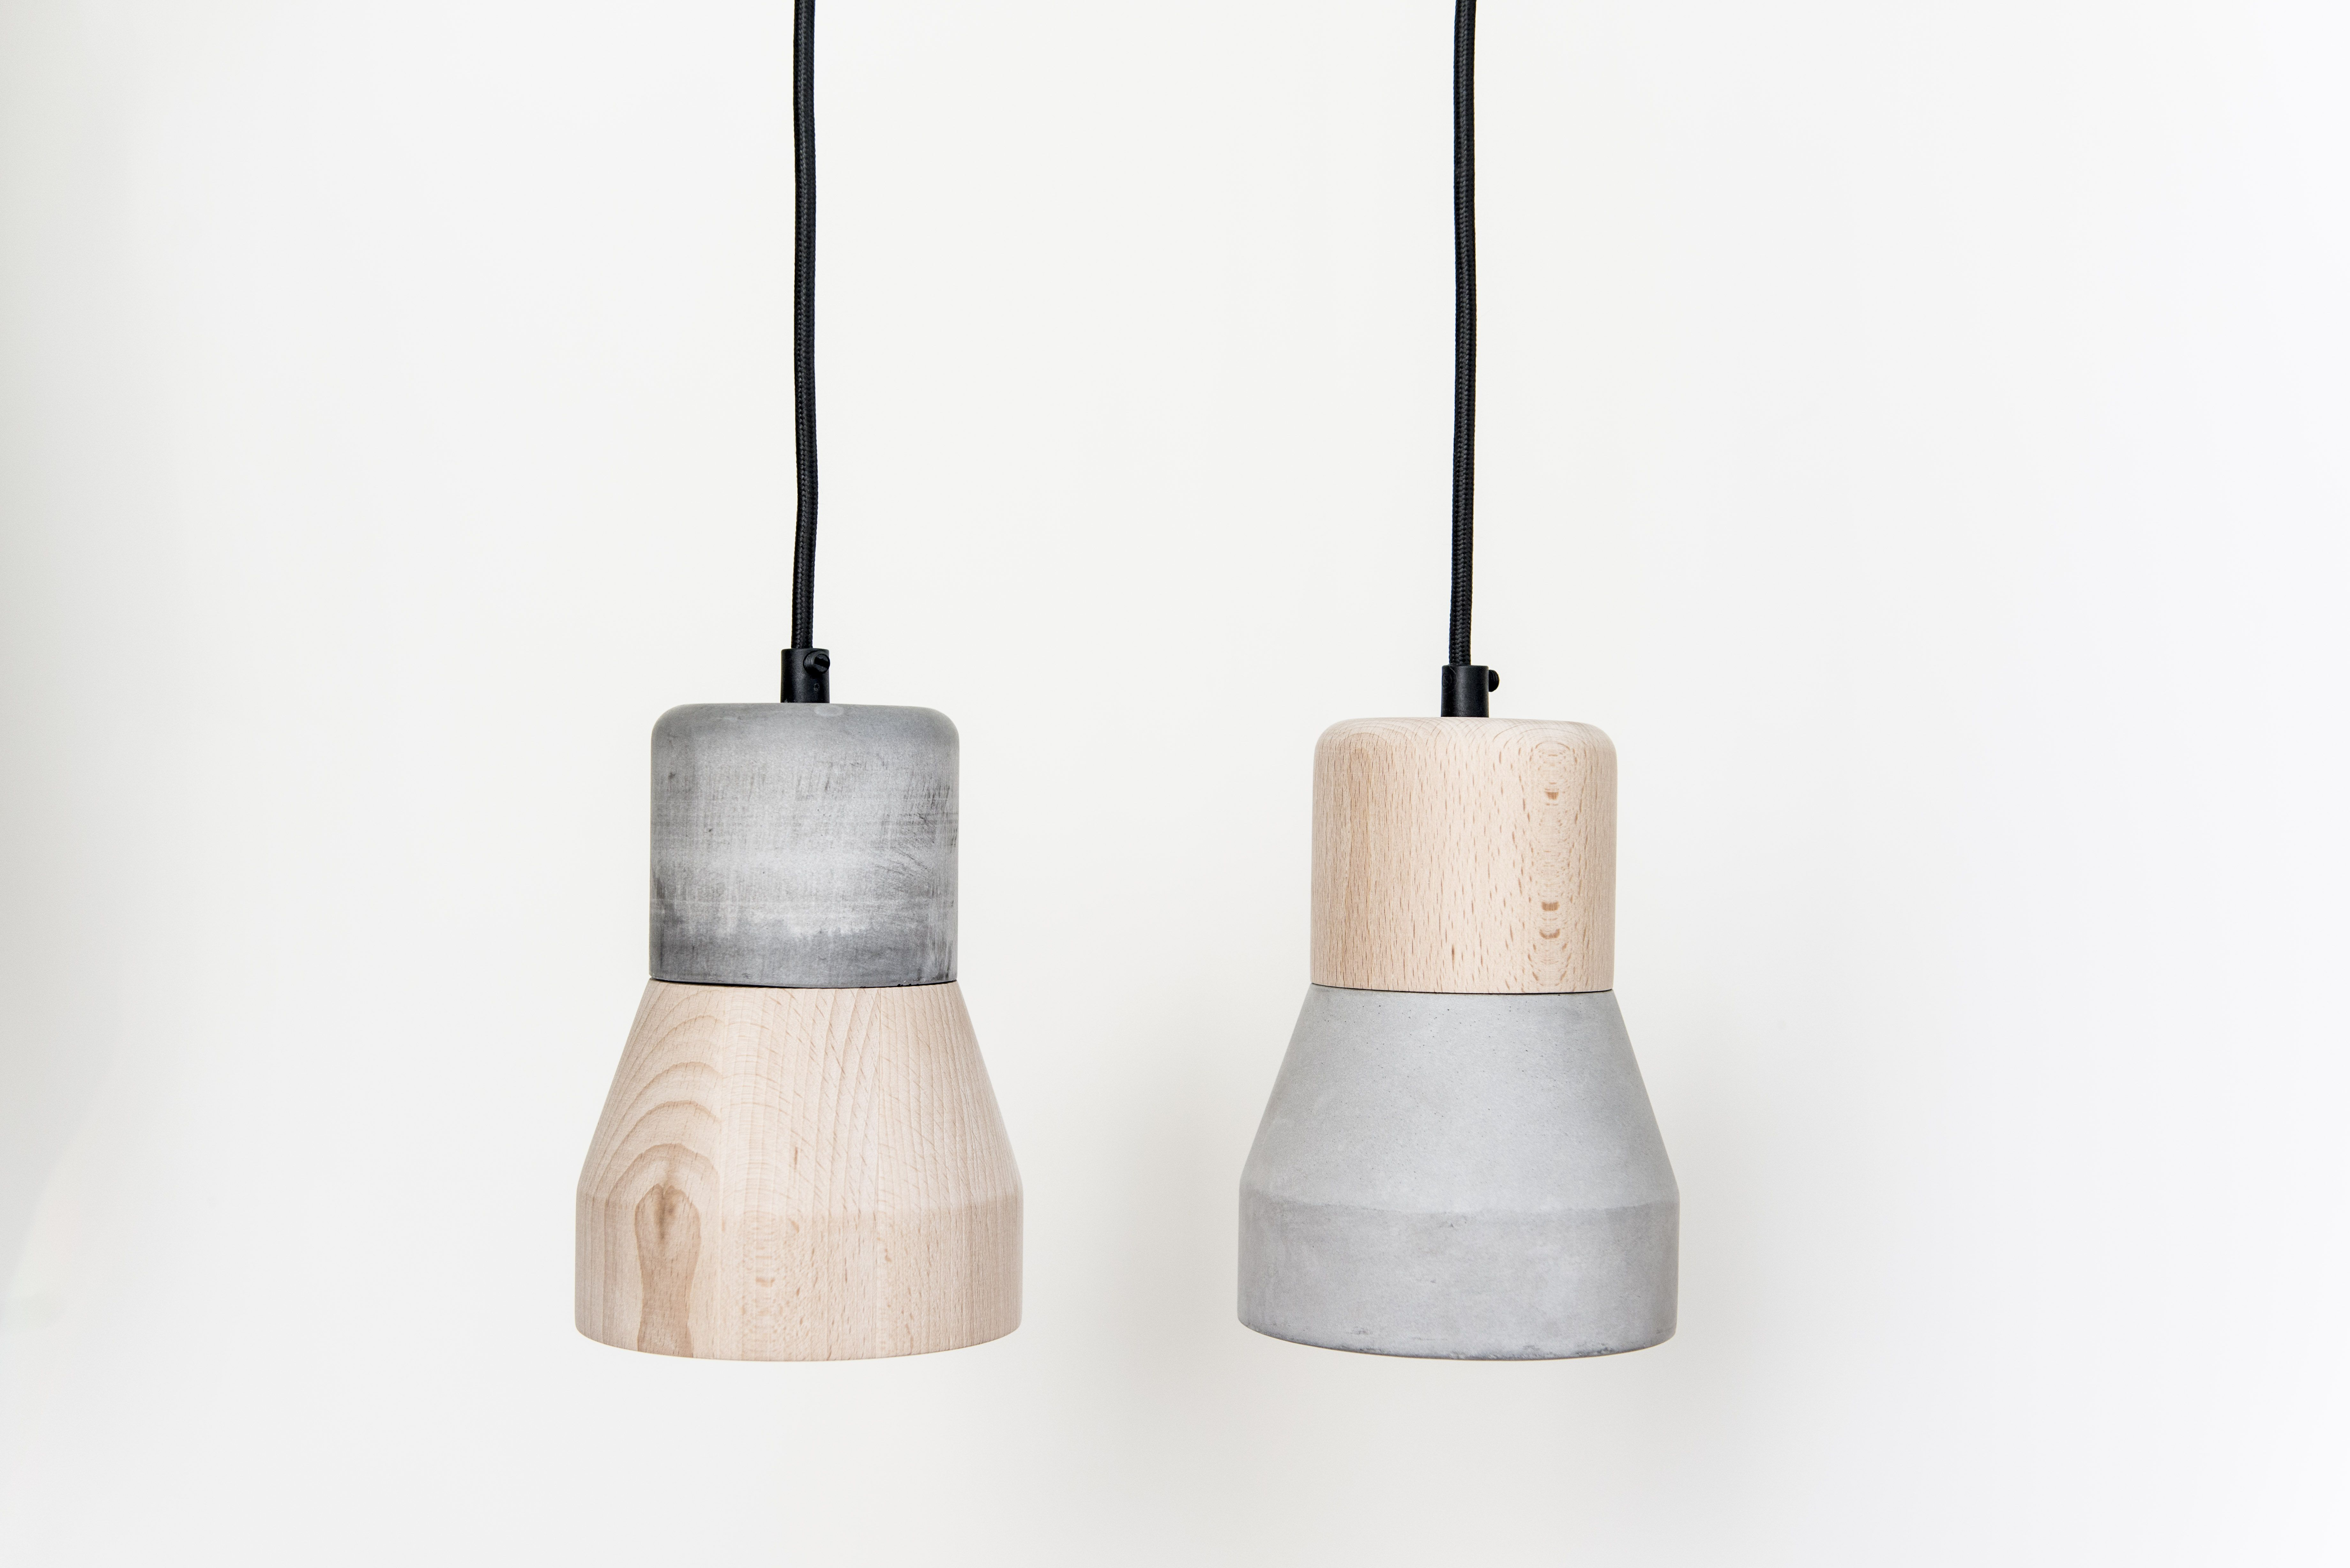 cement wood lamp lights pinterest cement woods and ceiling